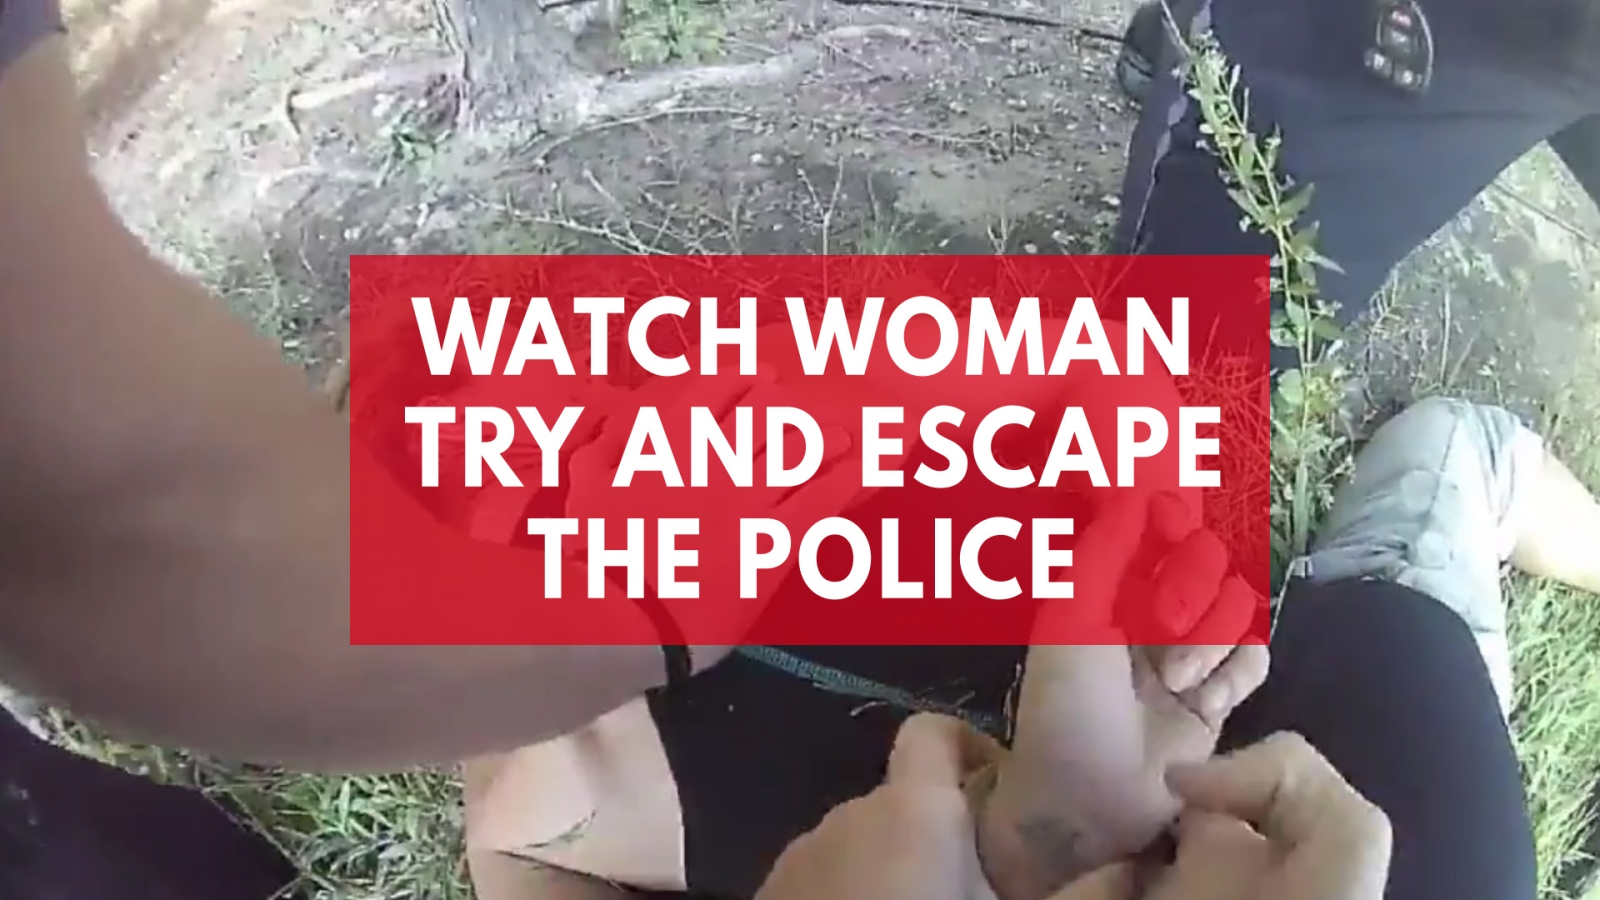 watch-arrested-womans-daring-escape-as-she-slips-handcuffs-and-steals-police-car